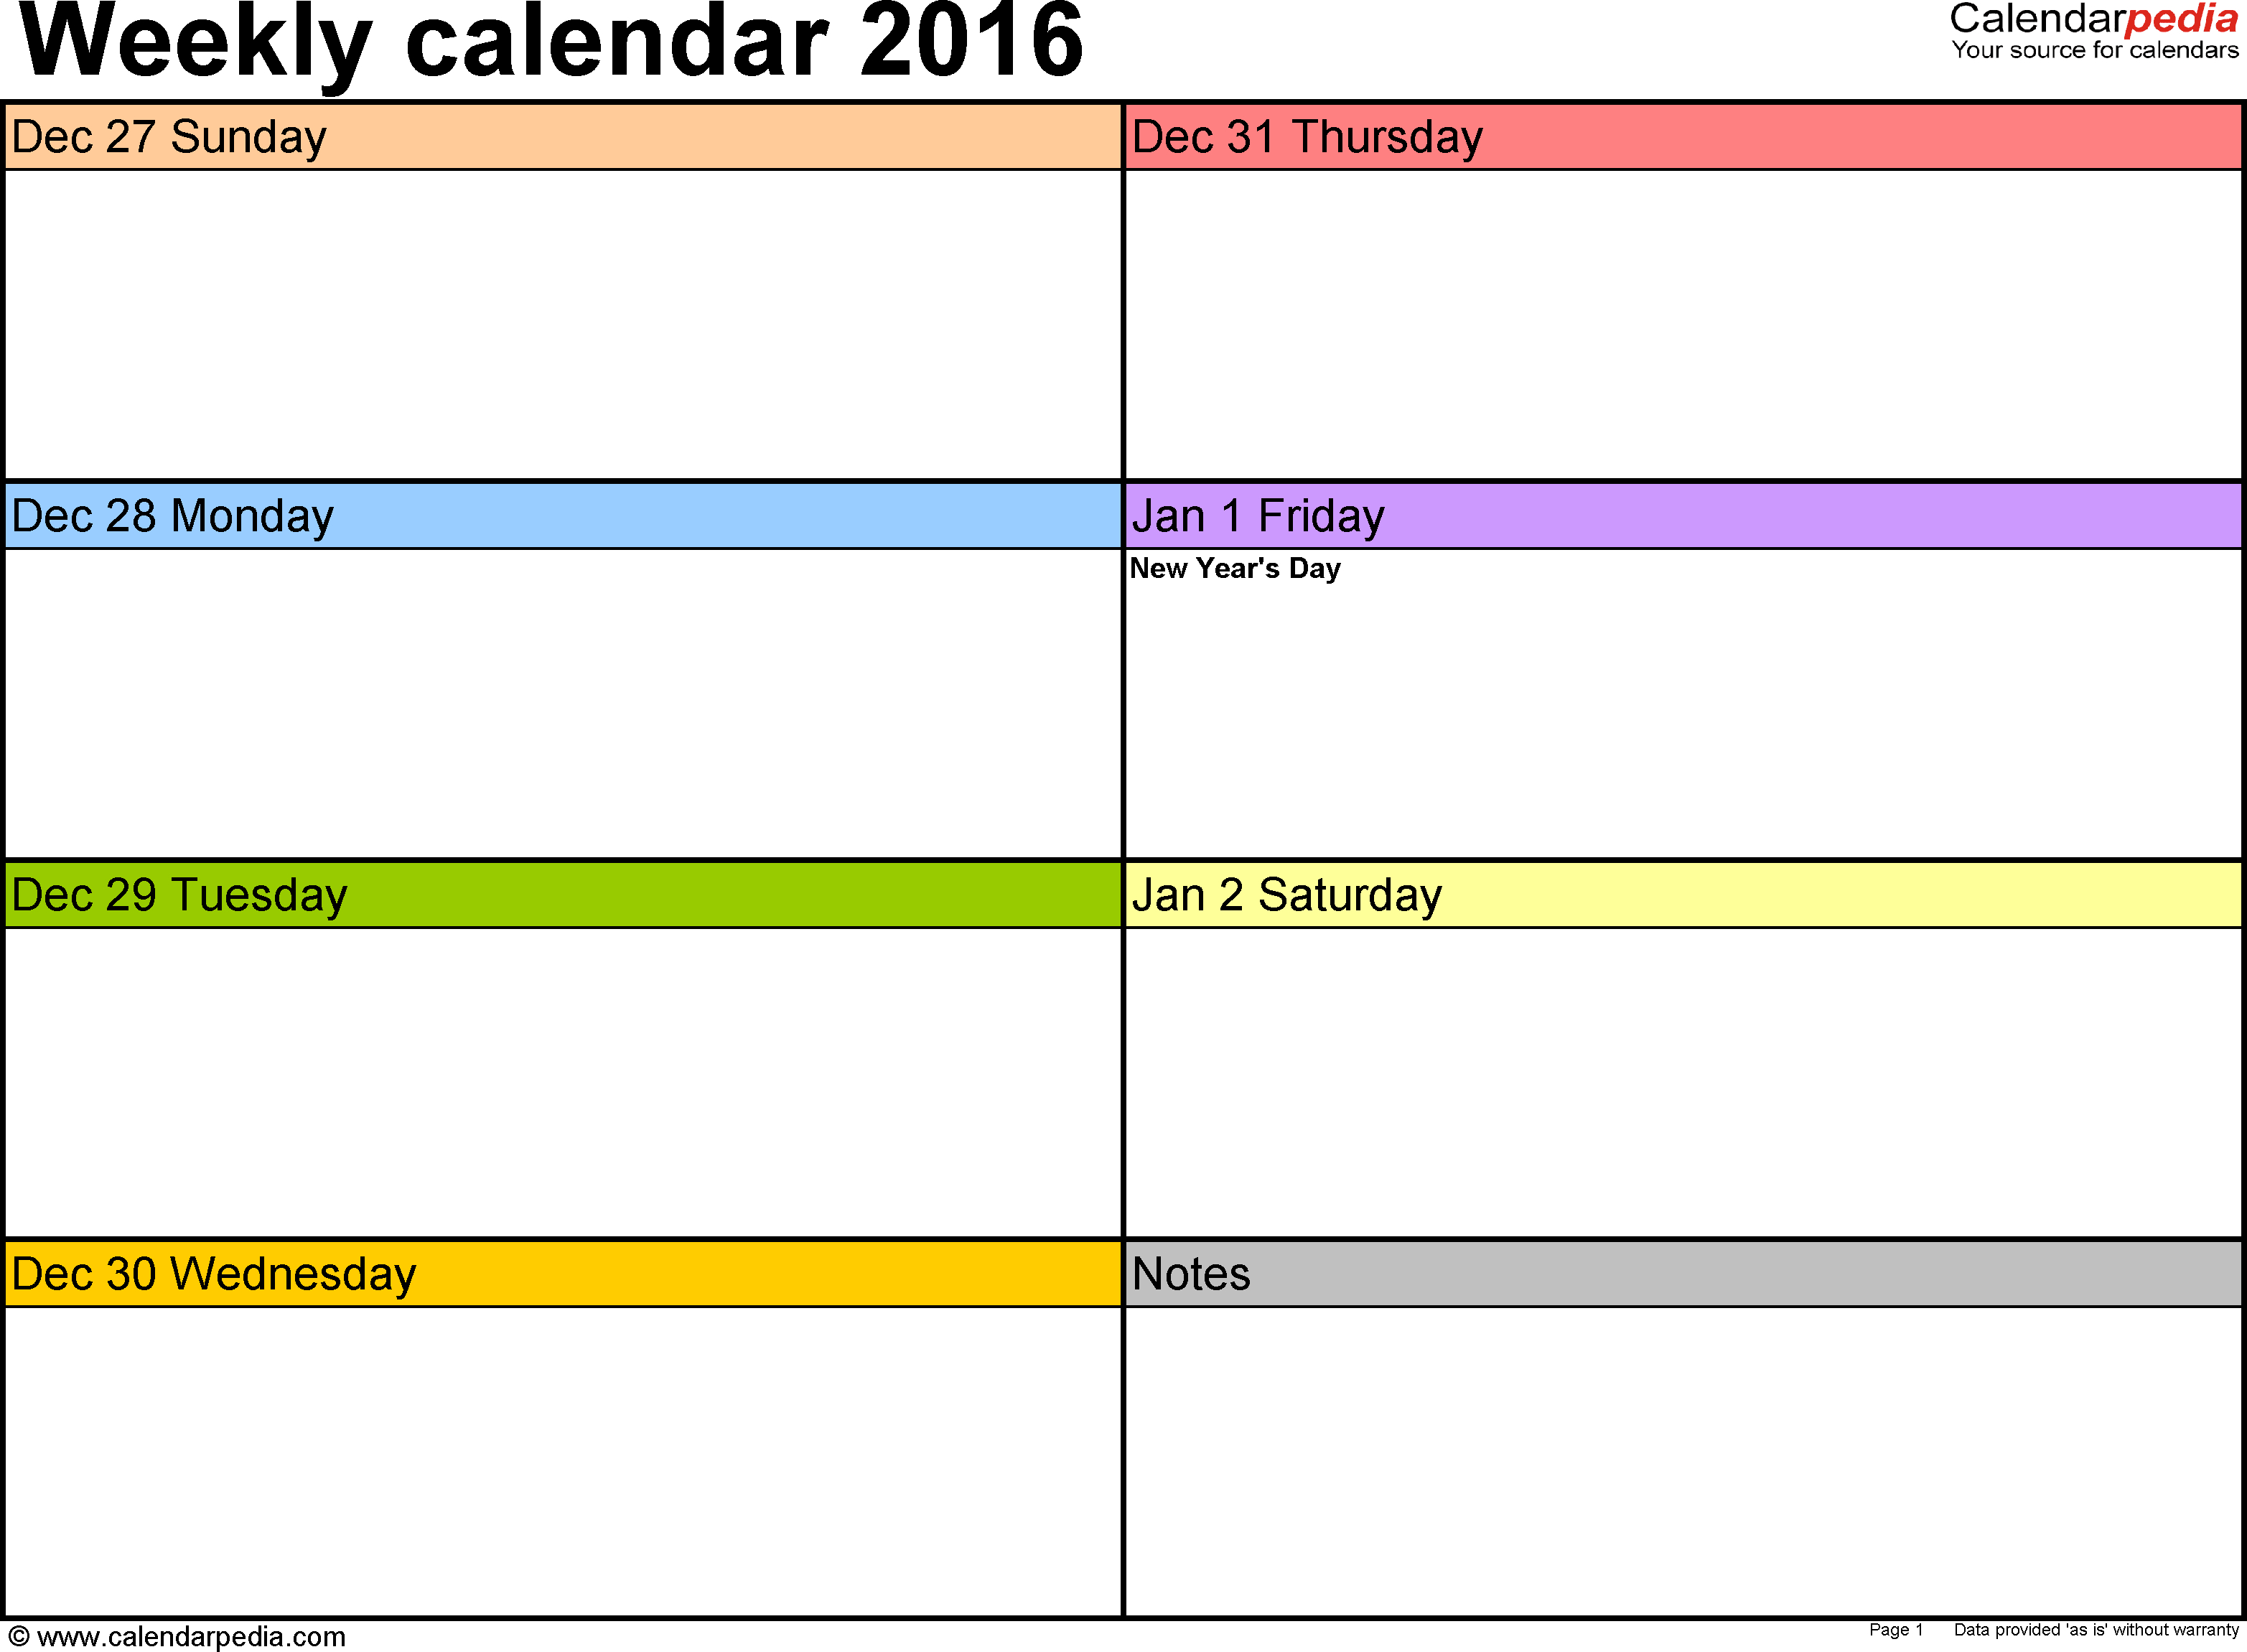 Weekly Calendar 2016: Template For Pdf Version 6, Landscape 2 Week Schedule Word Template